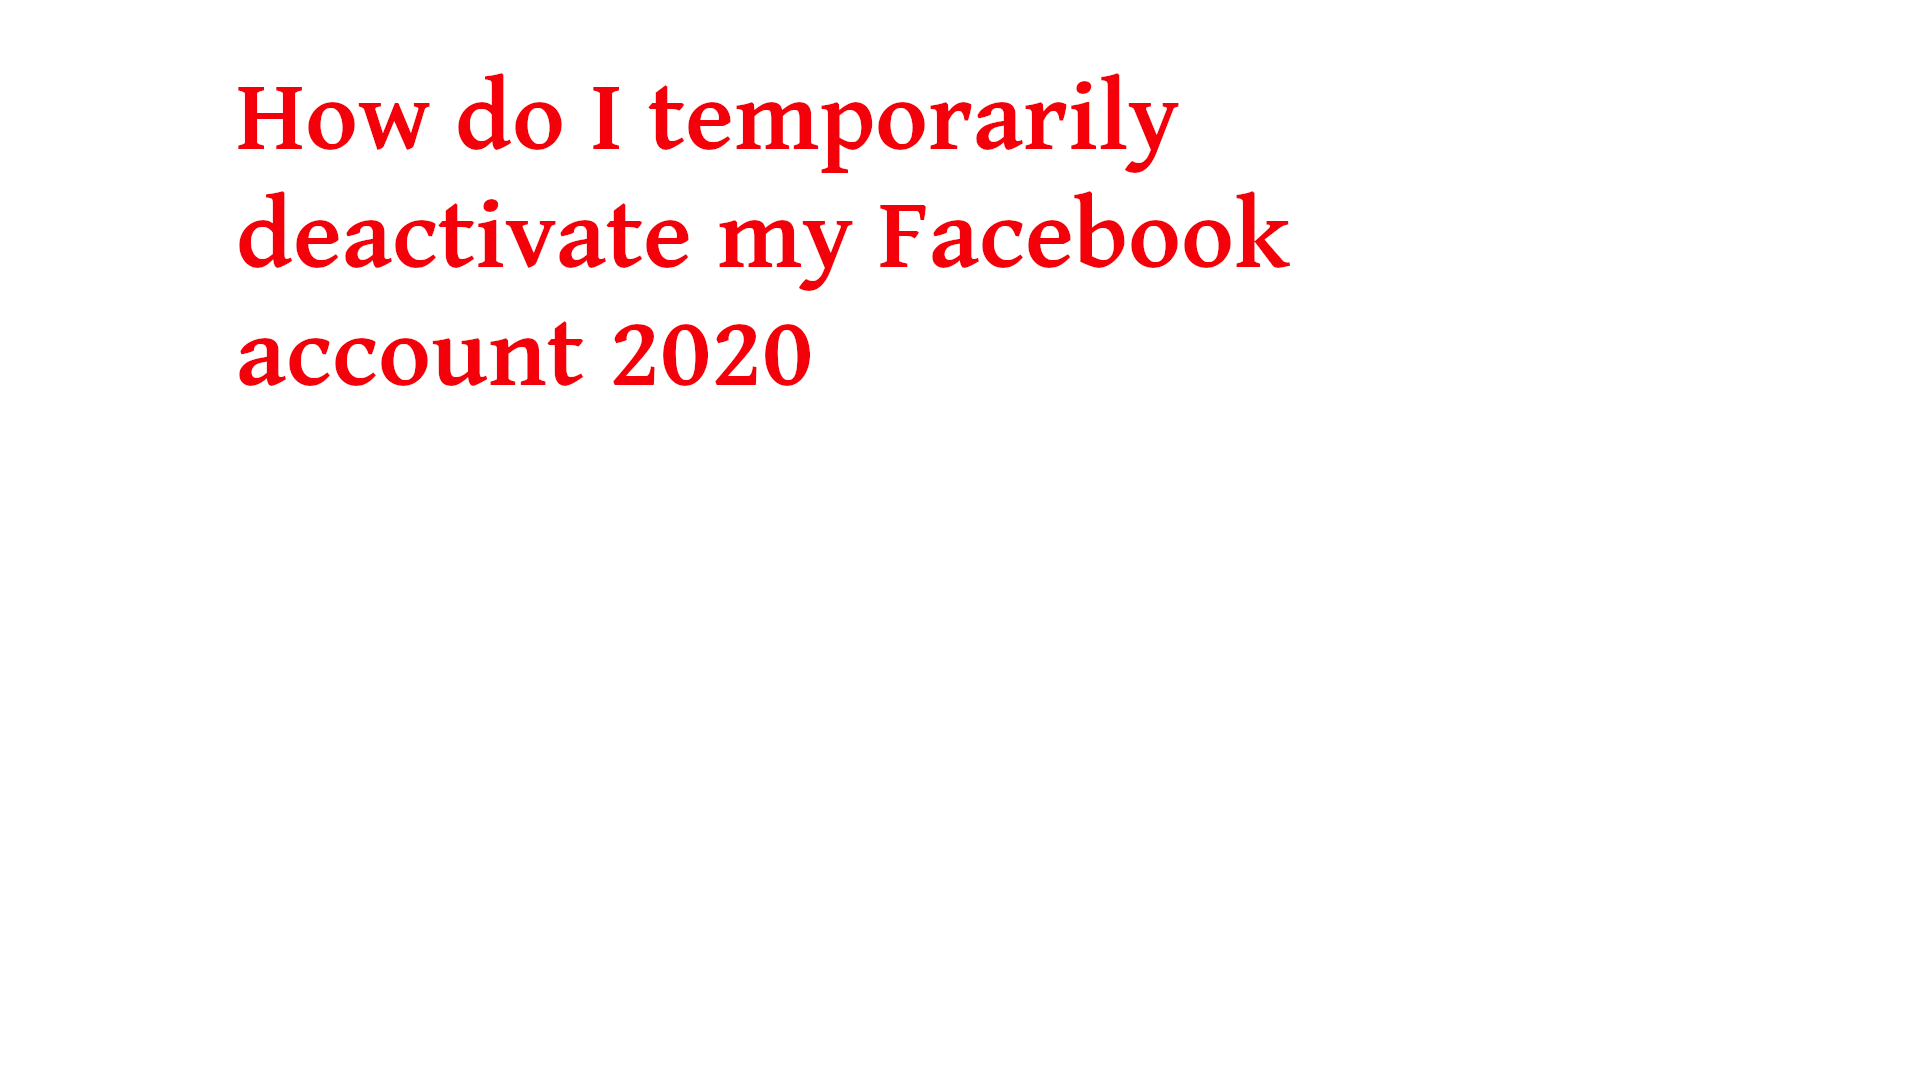 How do I temporarily deactivate my Facebook account 2020